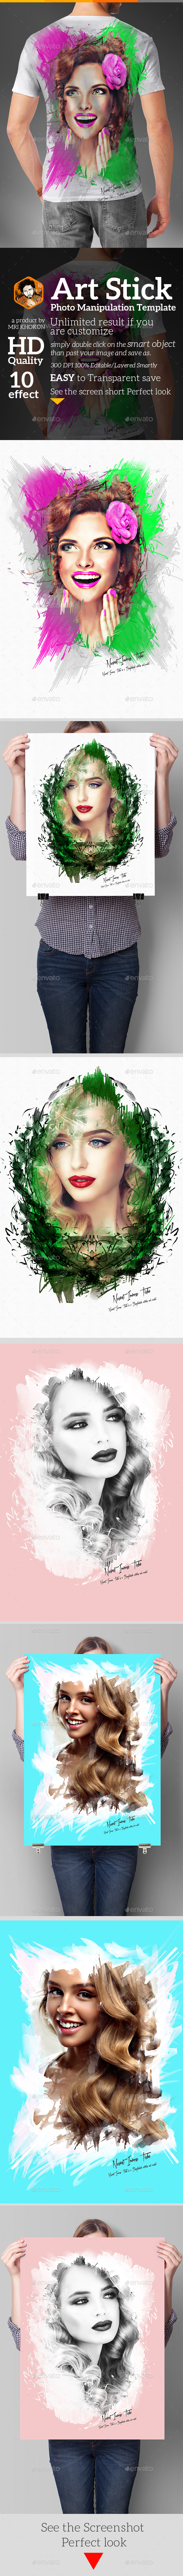 GraphicRiver Artistic Photo Manipulation Template 20674197